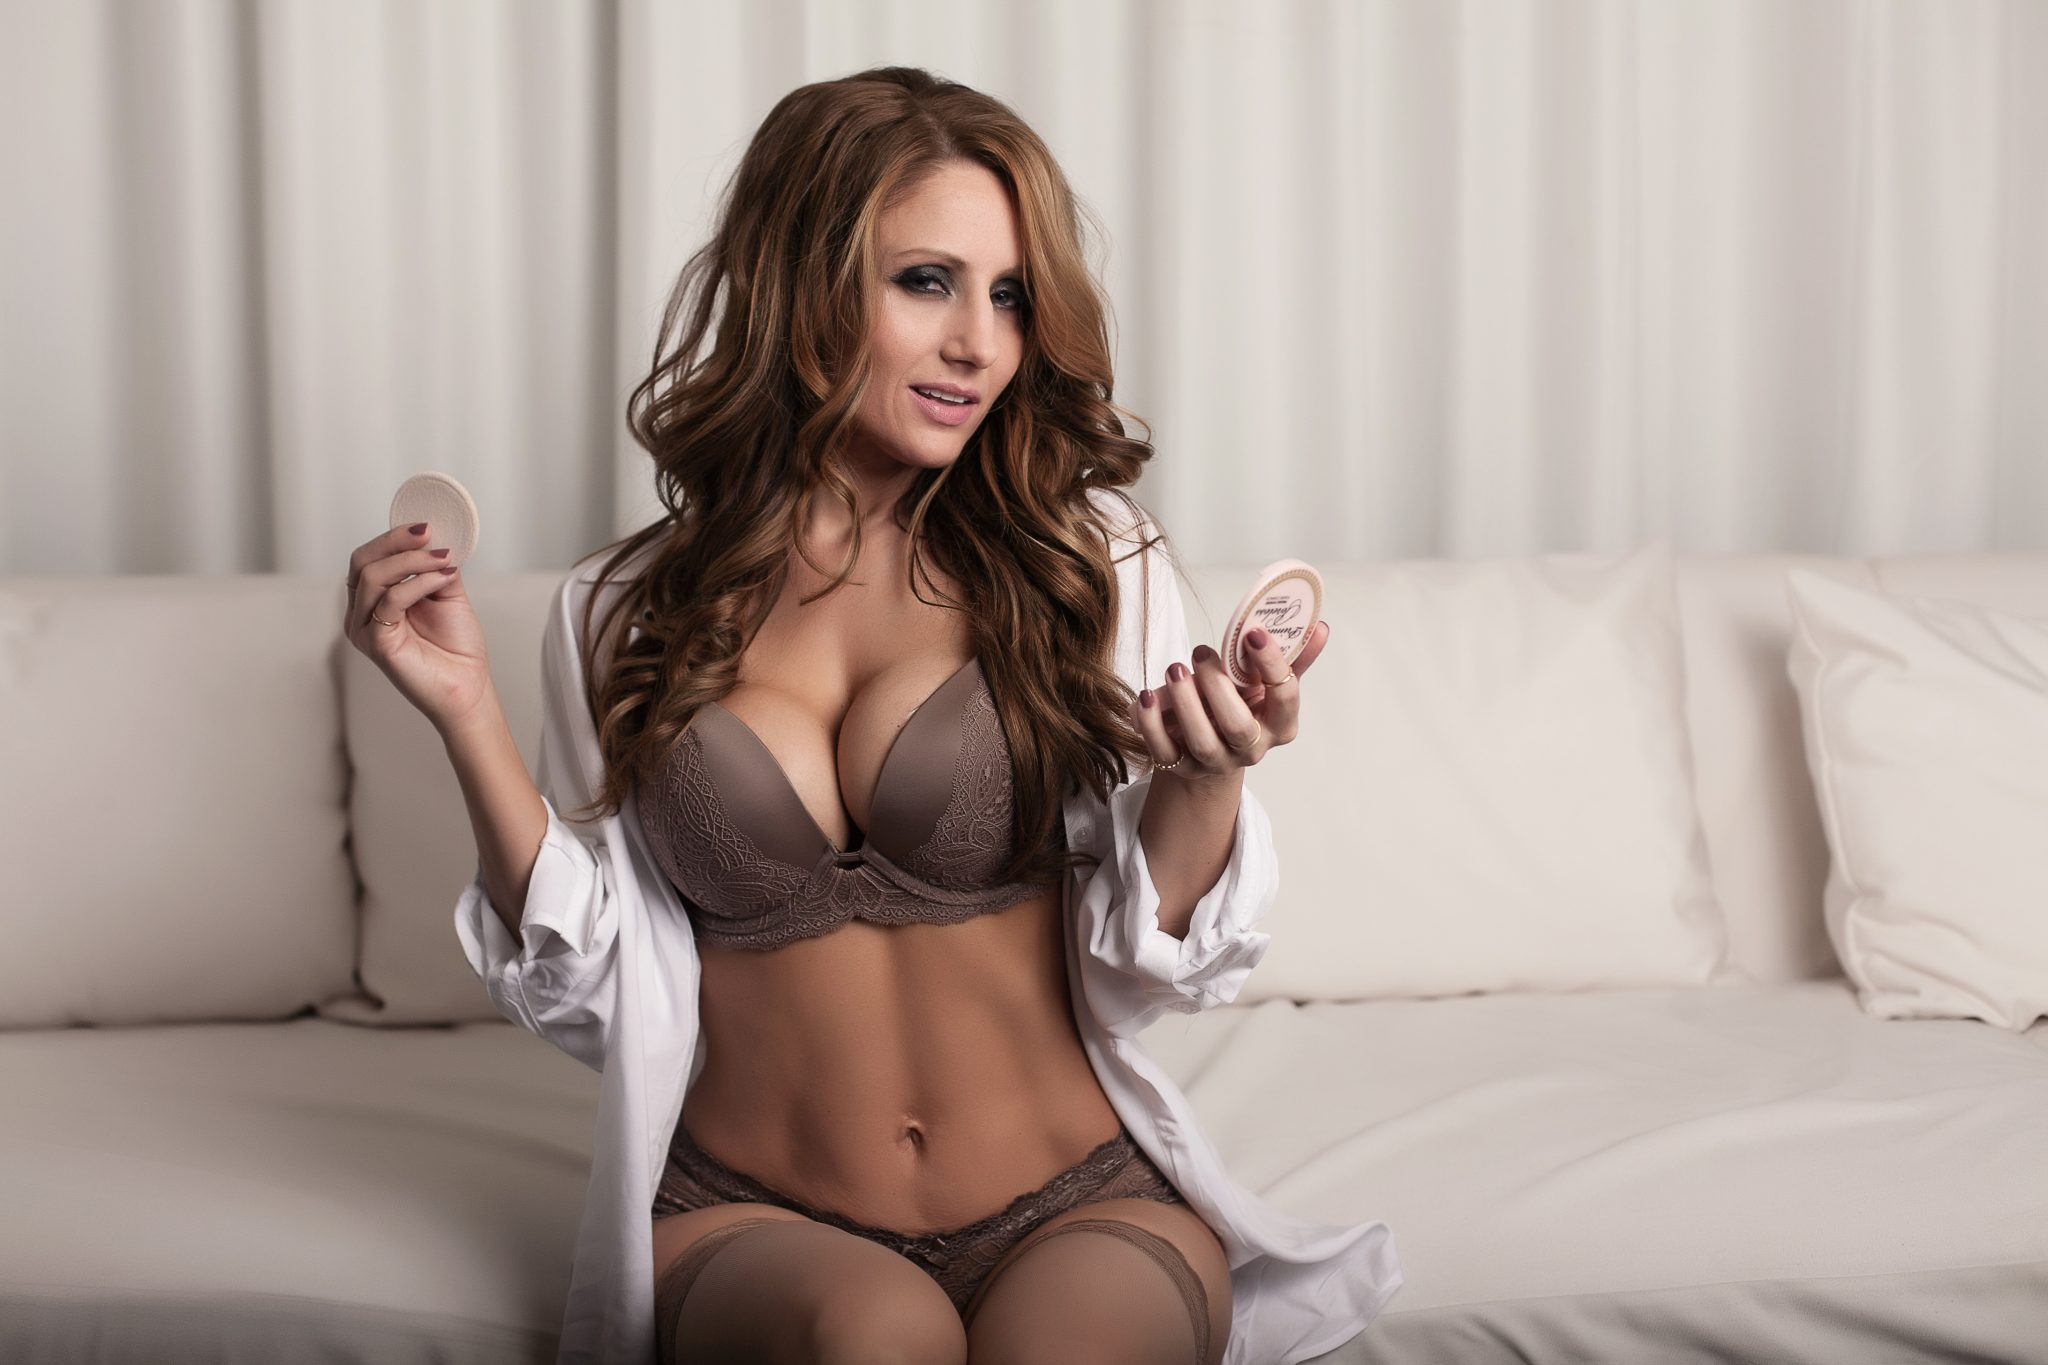 Powdering her nose in boudoir photos wearing bra and panty set with a man's white shirt.